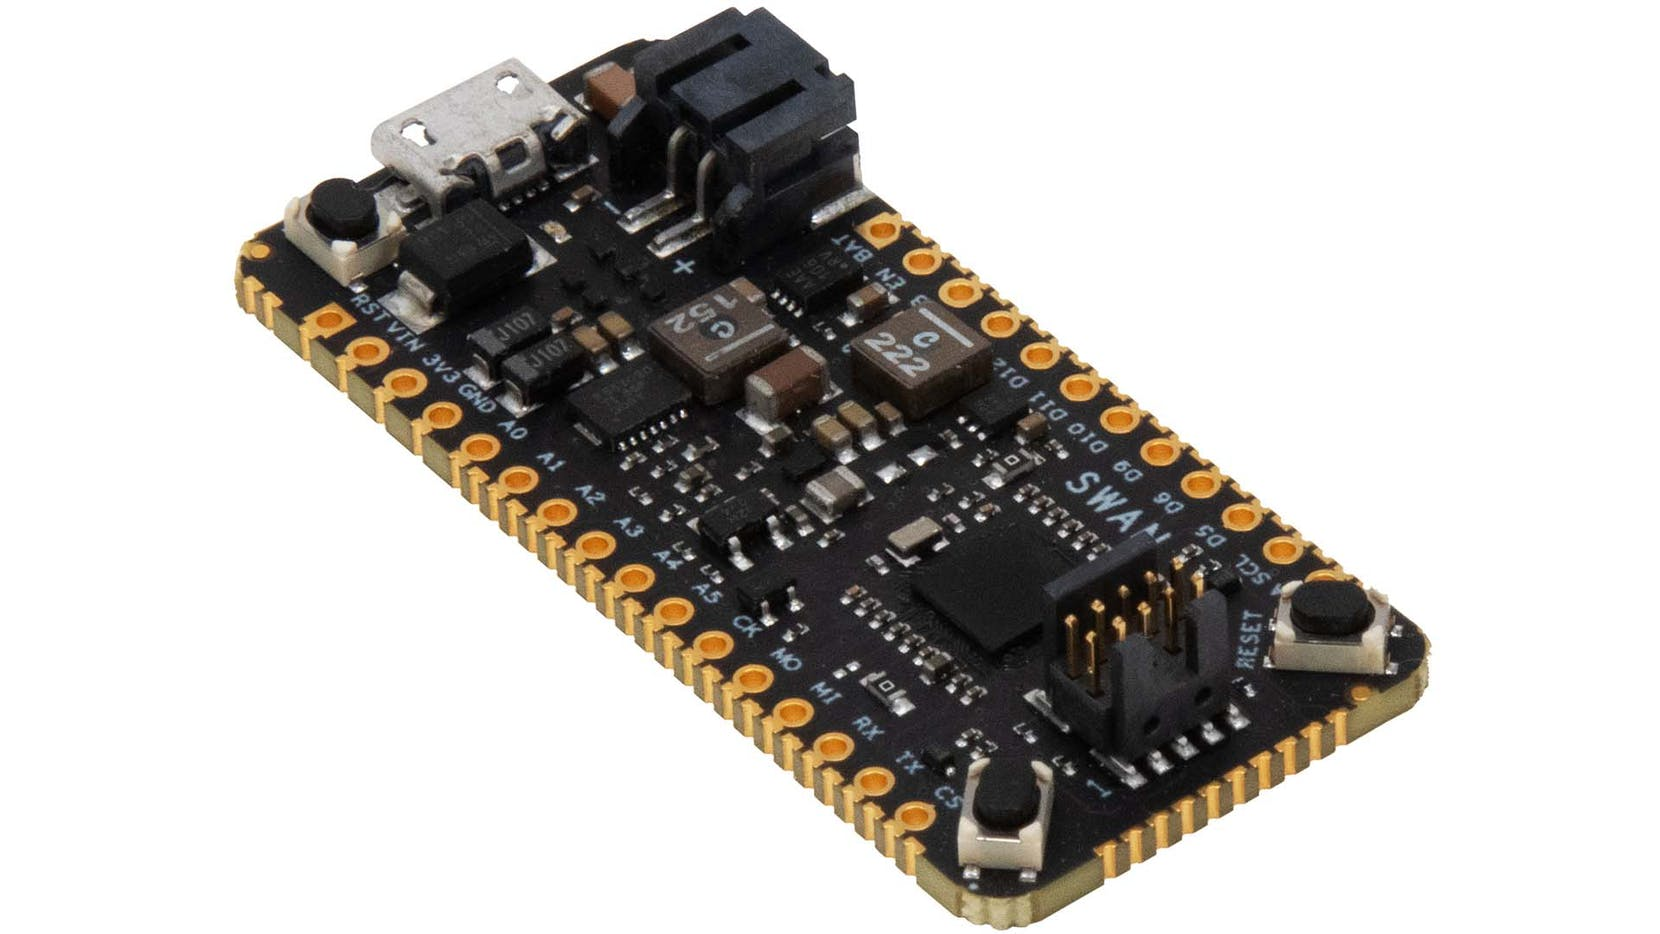 SWAN – Low-Cost, Low-Power Embeddable STM32L4R5-based MCU from Blue Wireless